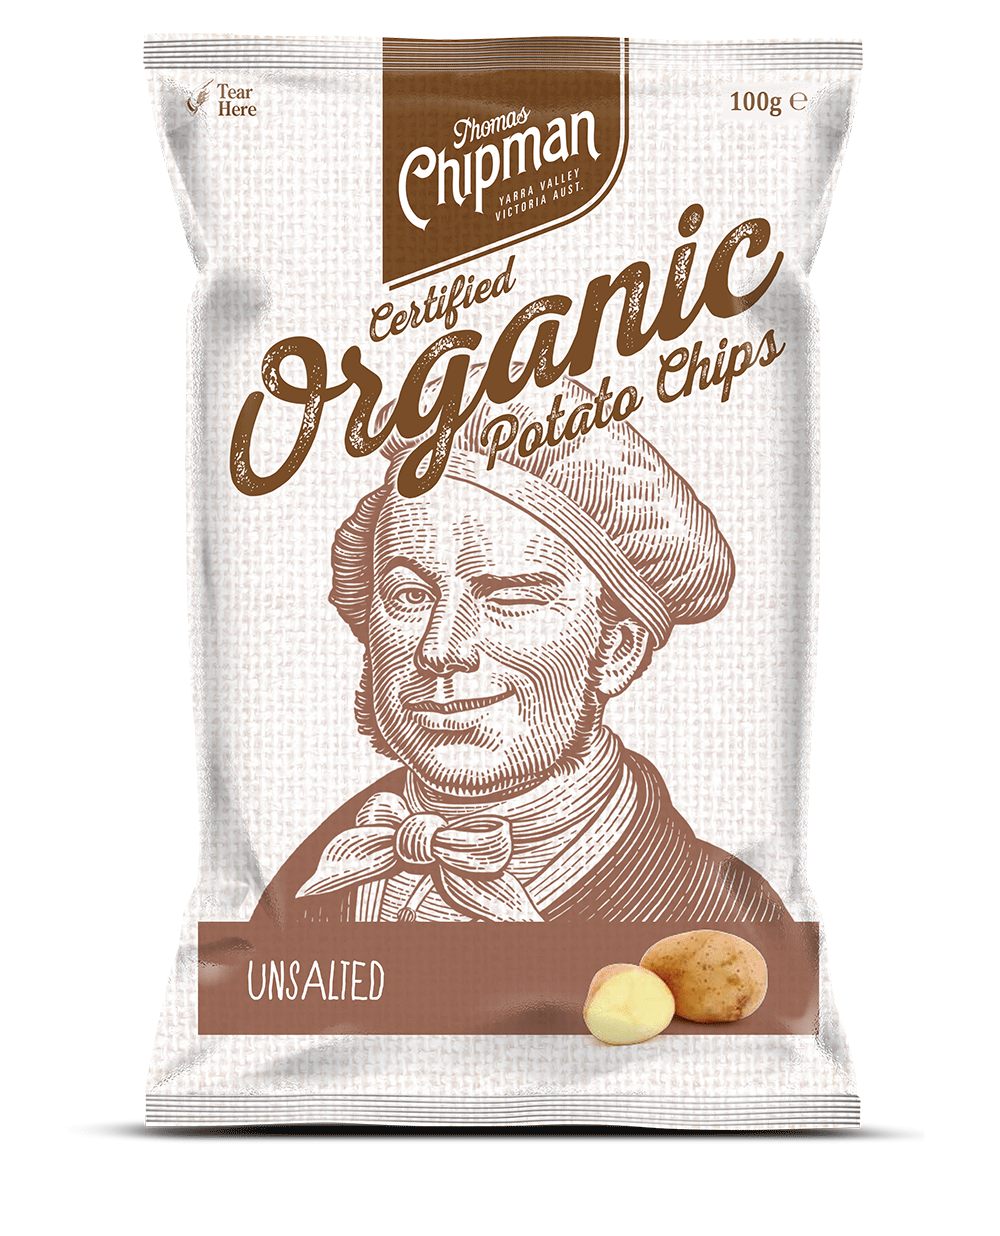 - Thomas Chipman® Unsalted Potato ChipsIt was then due time to celebrate the delicious taste of organic potato; I realised it was so flavourful it doesn't require any seasoning to shine. I created an Unsalted version to honour the natural and flavourful organic potato in all its glory. Available in a 100g pack.